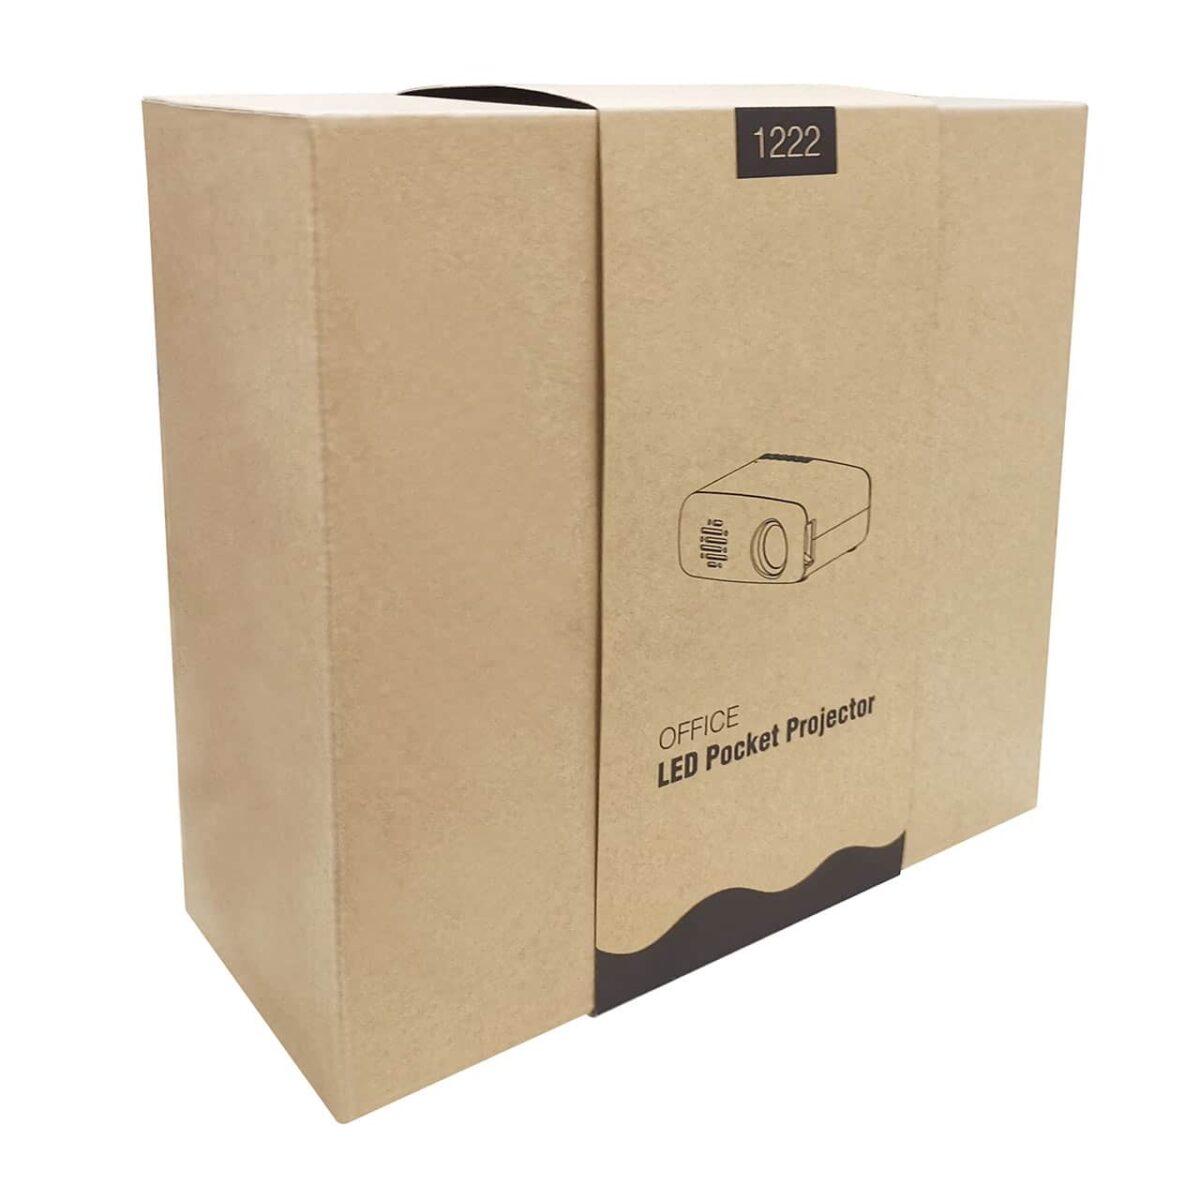 Projector to go giftbox - Yipp & Co